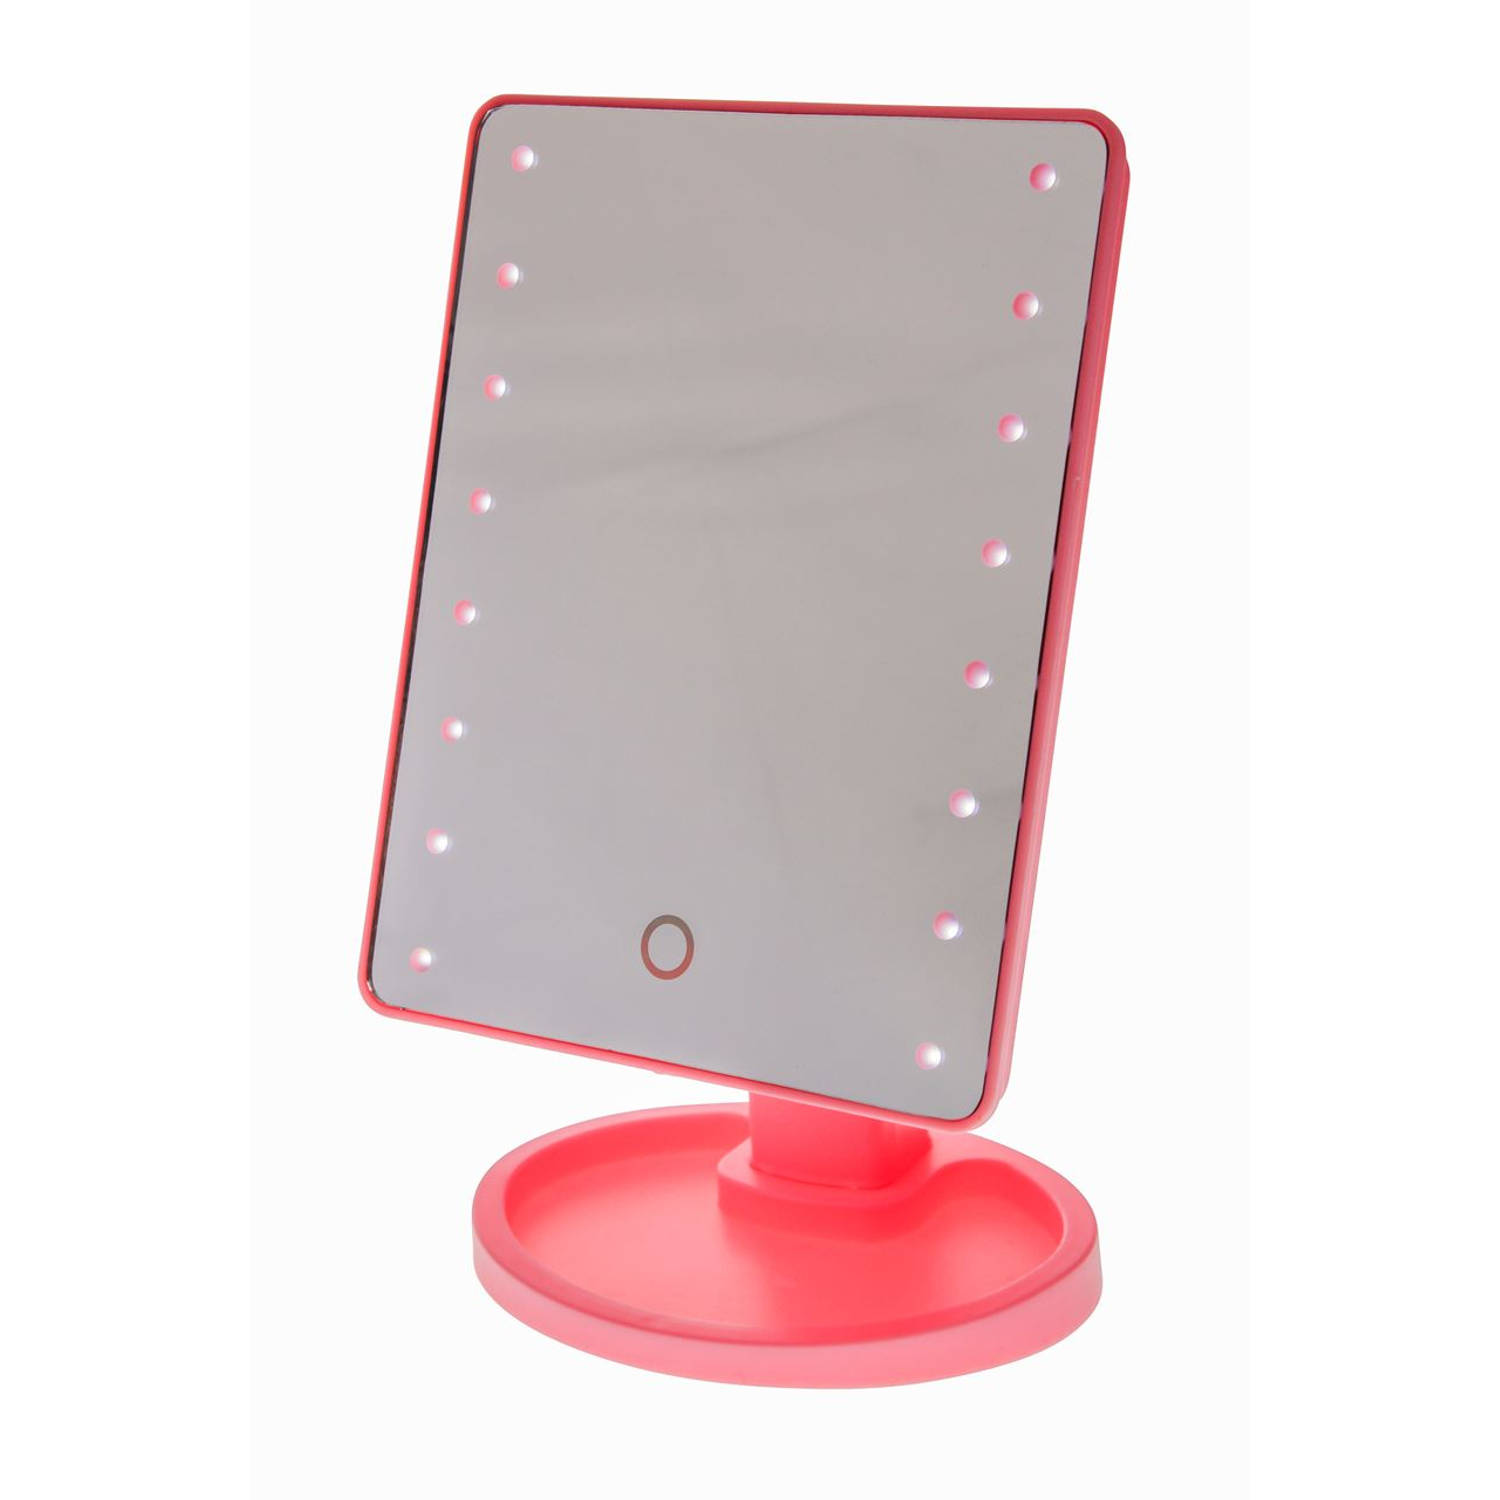 Touch Screen Make-Up Spiegel met LED verlichting - Roze